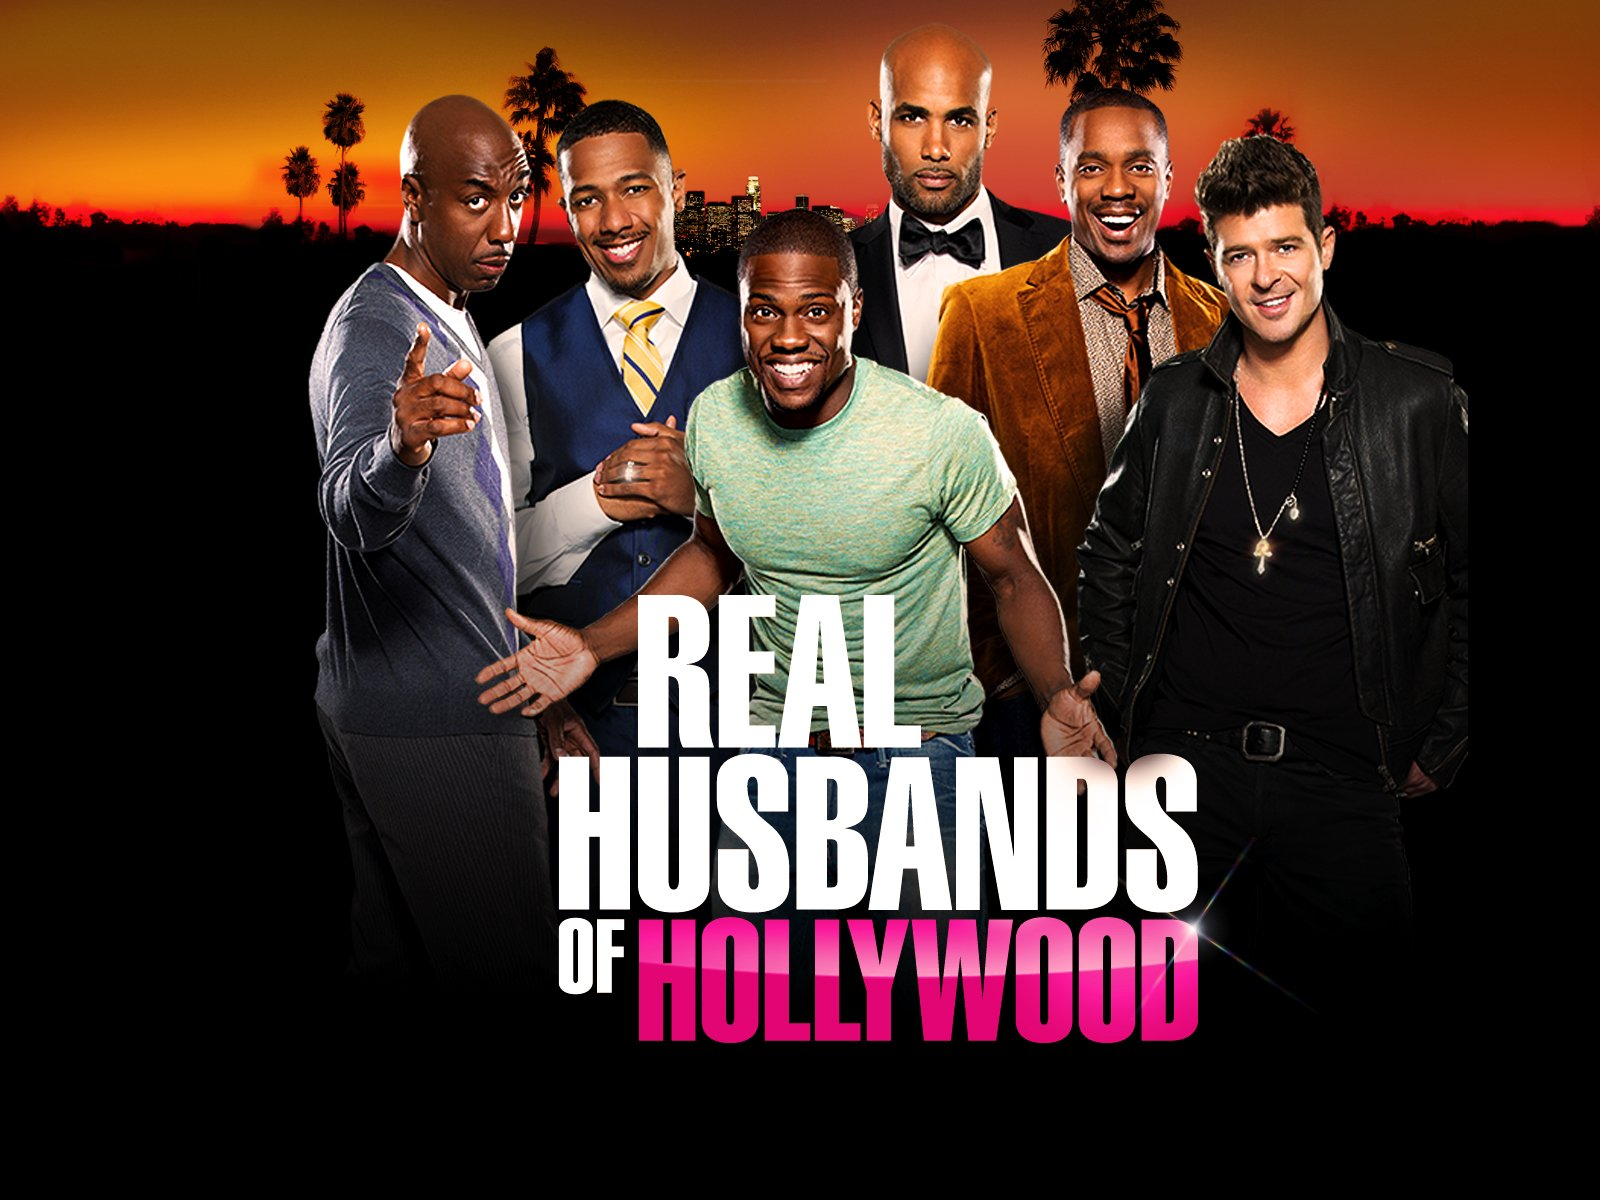 Watch Real Husbands Of Hollywood Season 1 Prime Video